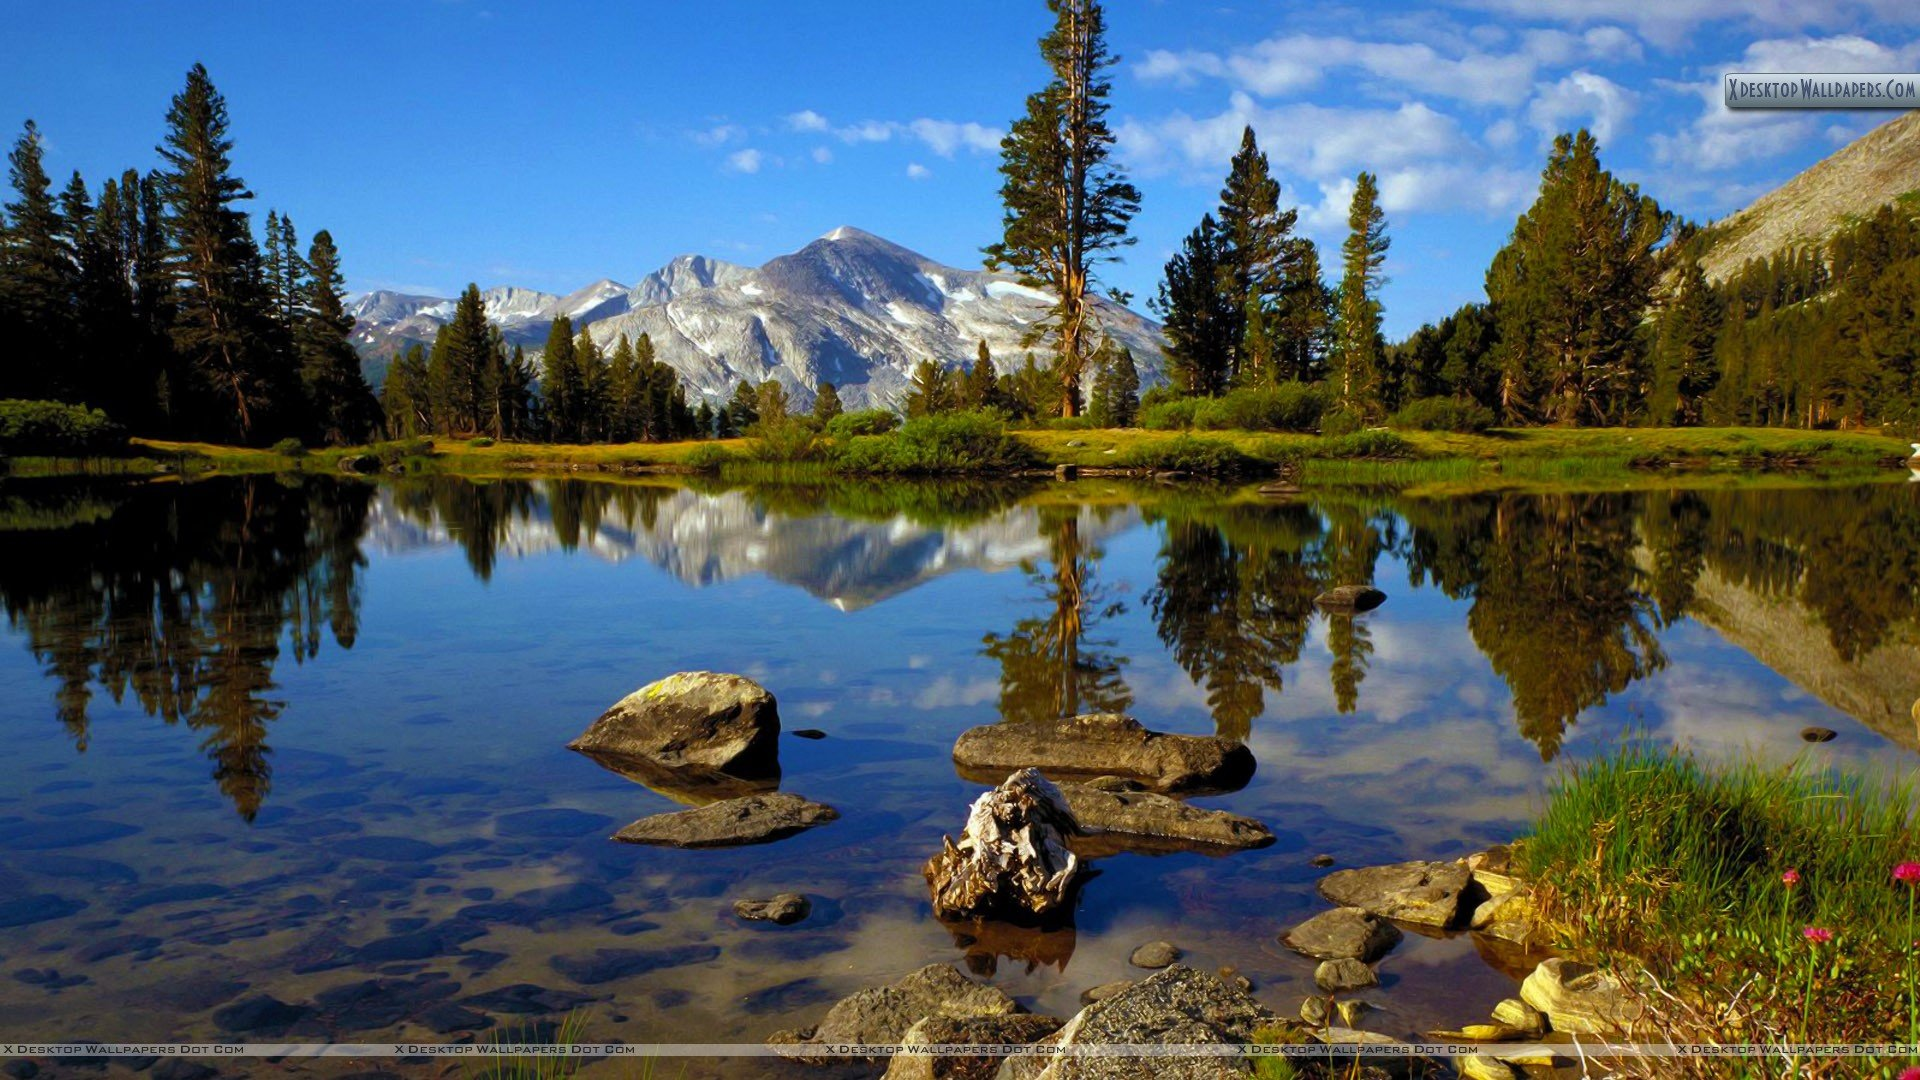 Country Near Tioga Pass Yosemite National Park California Wallpaper 1920x1080